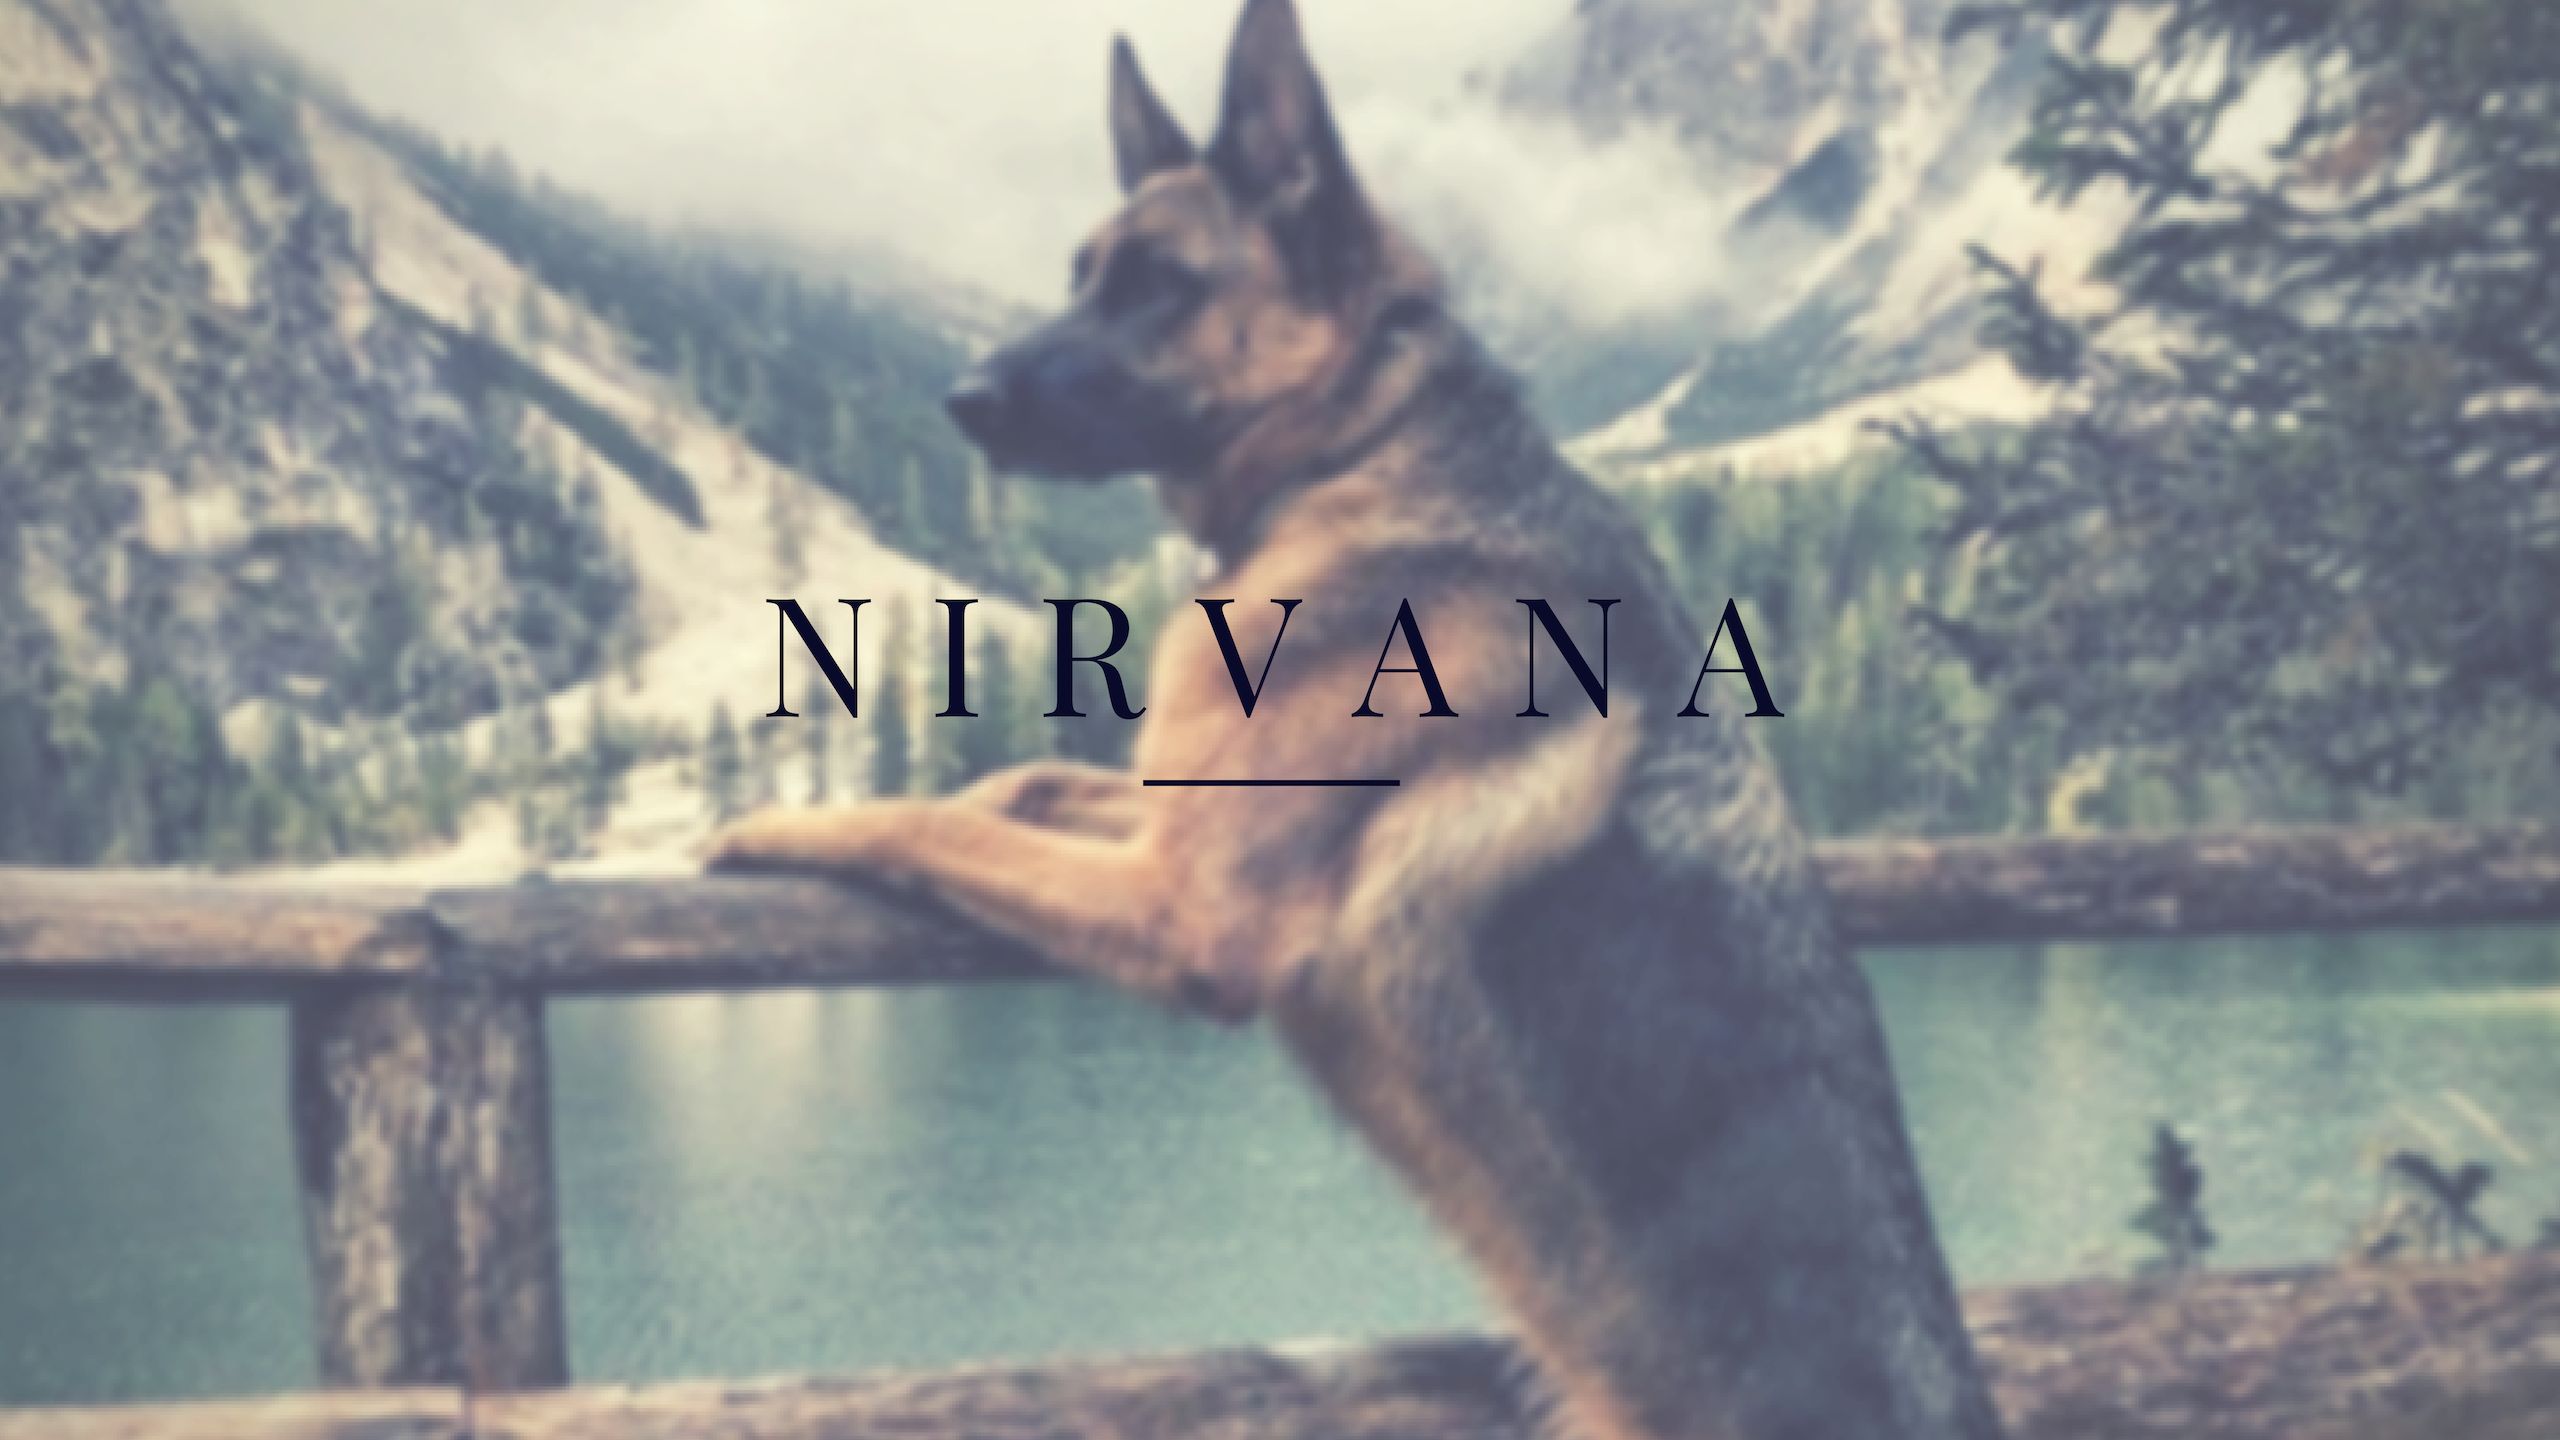 Nirvana ~ If we be friend ~ 1yxx